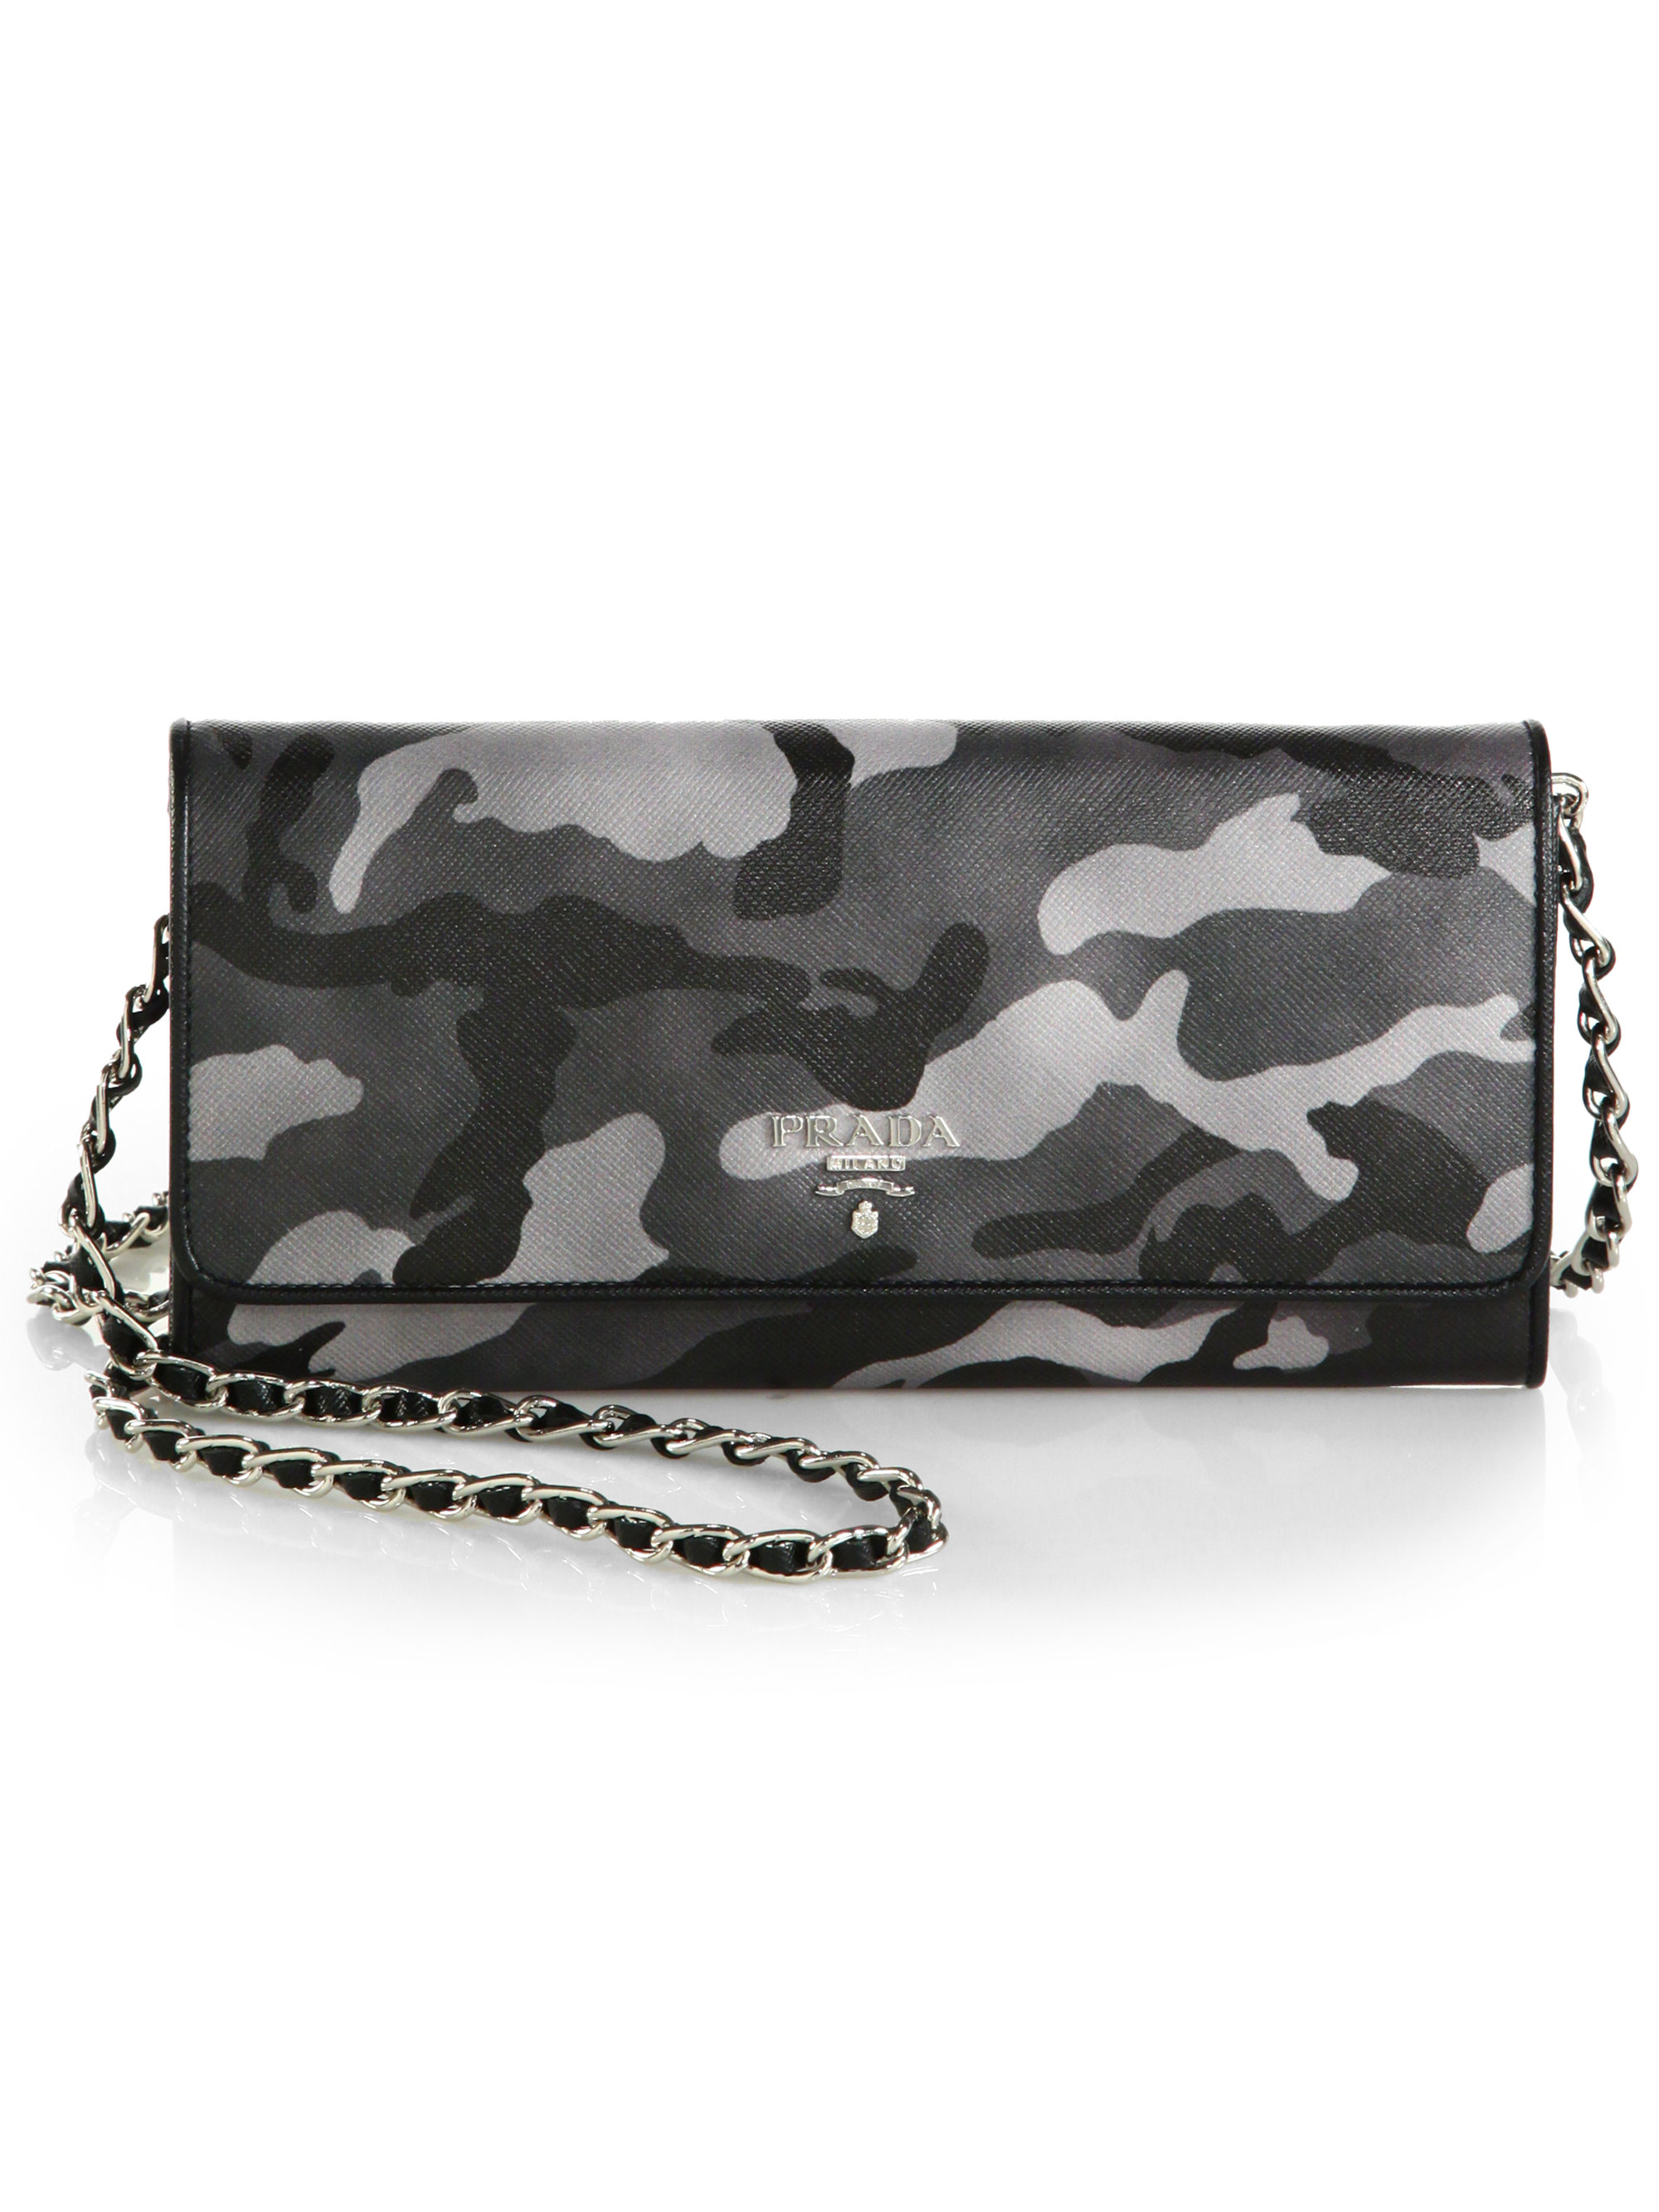 prada saffiano wallet on a chain gray, replica prada ...